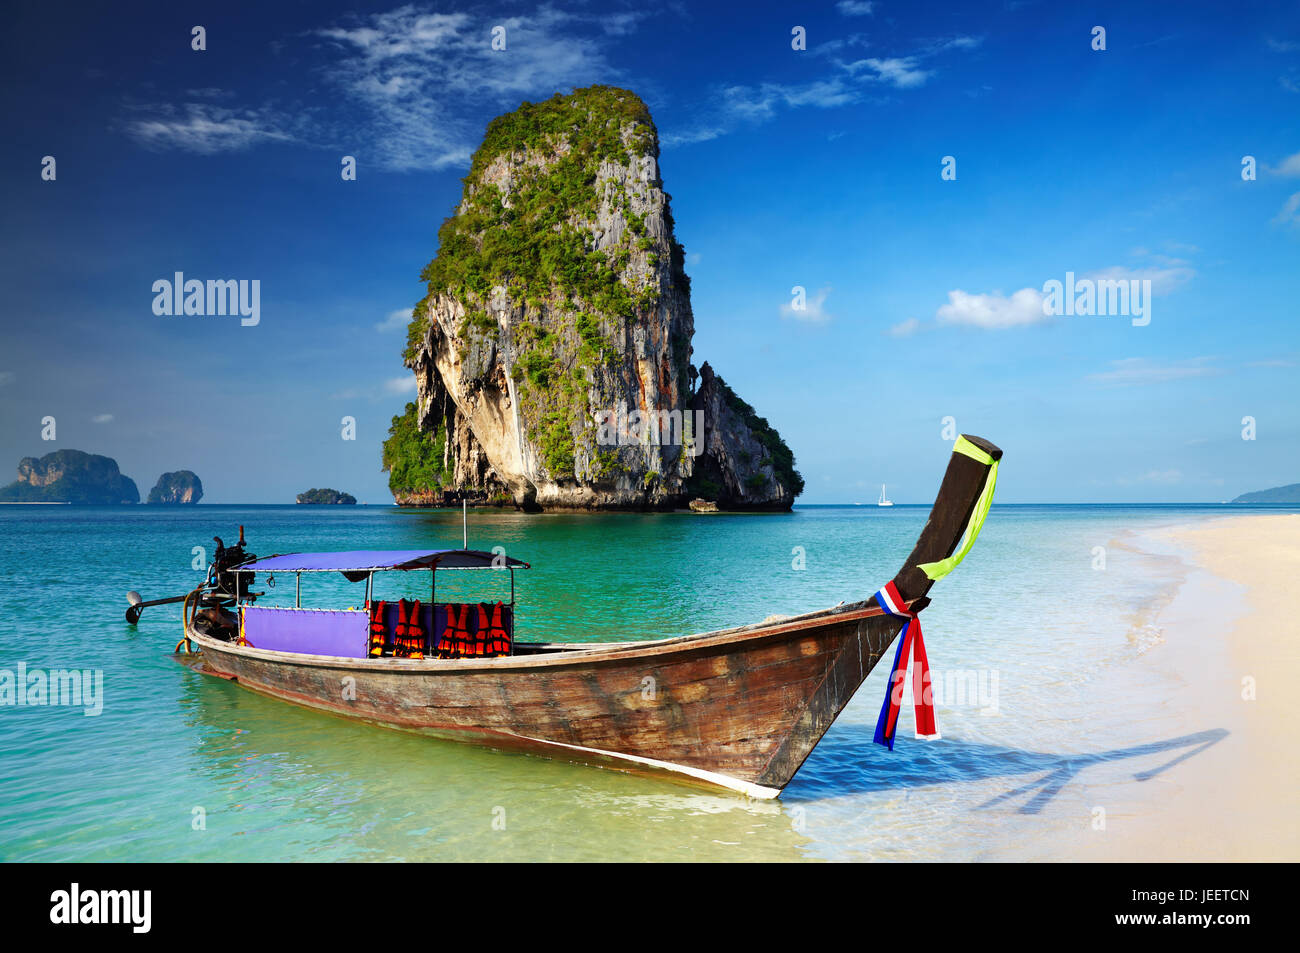 Playa Tropical, canoa,, Mar de Andaman, Tailandia Imagen De Stock